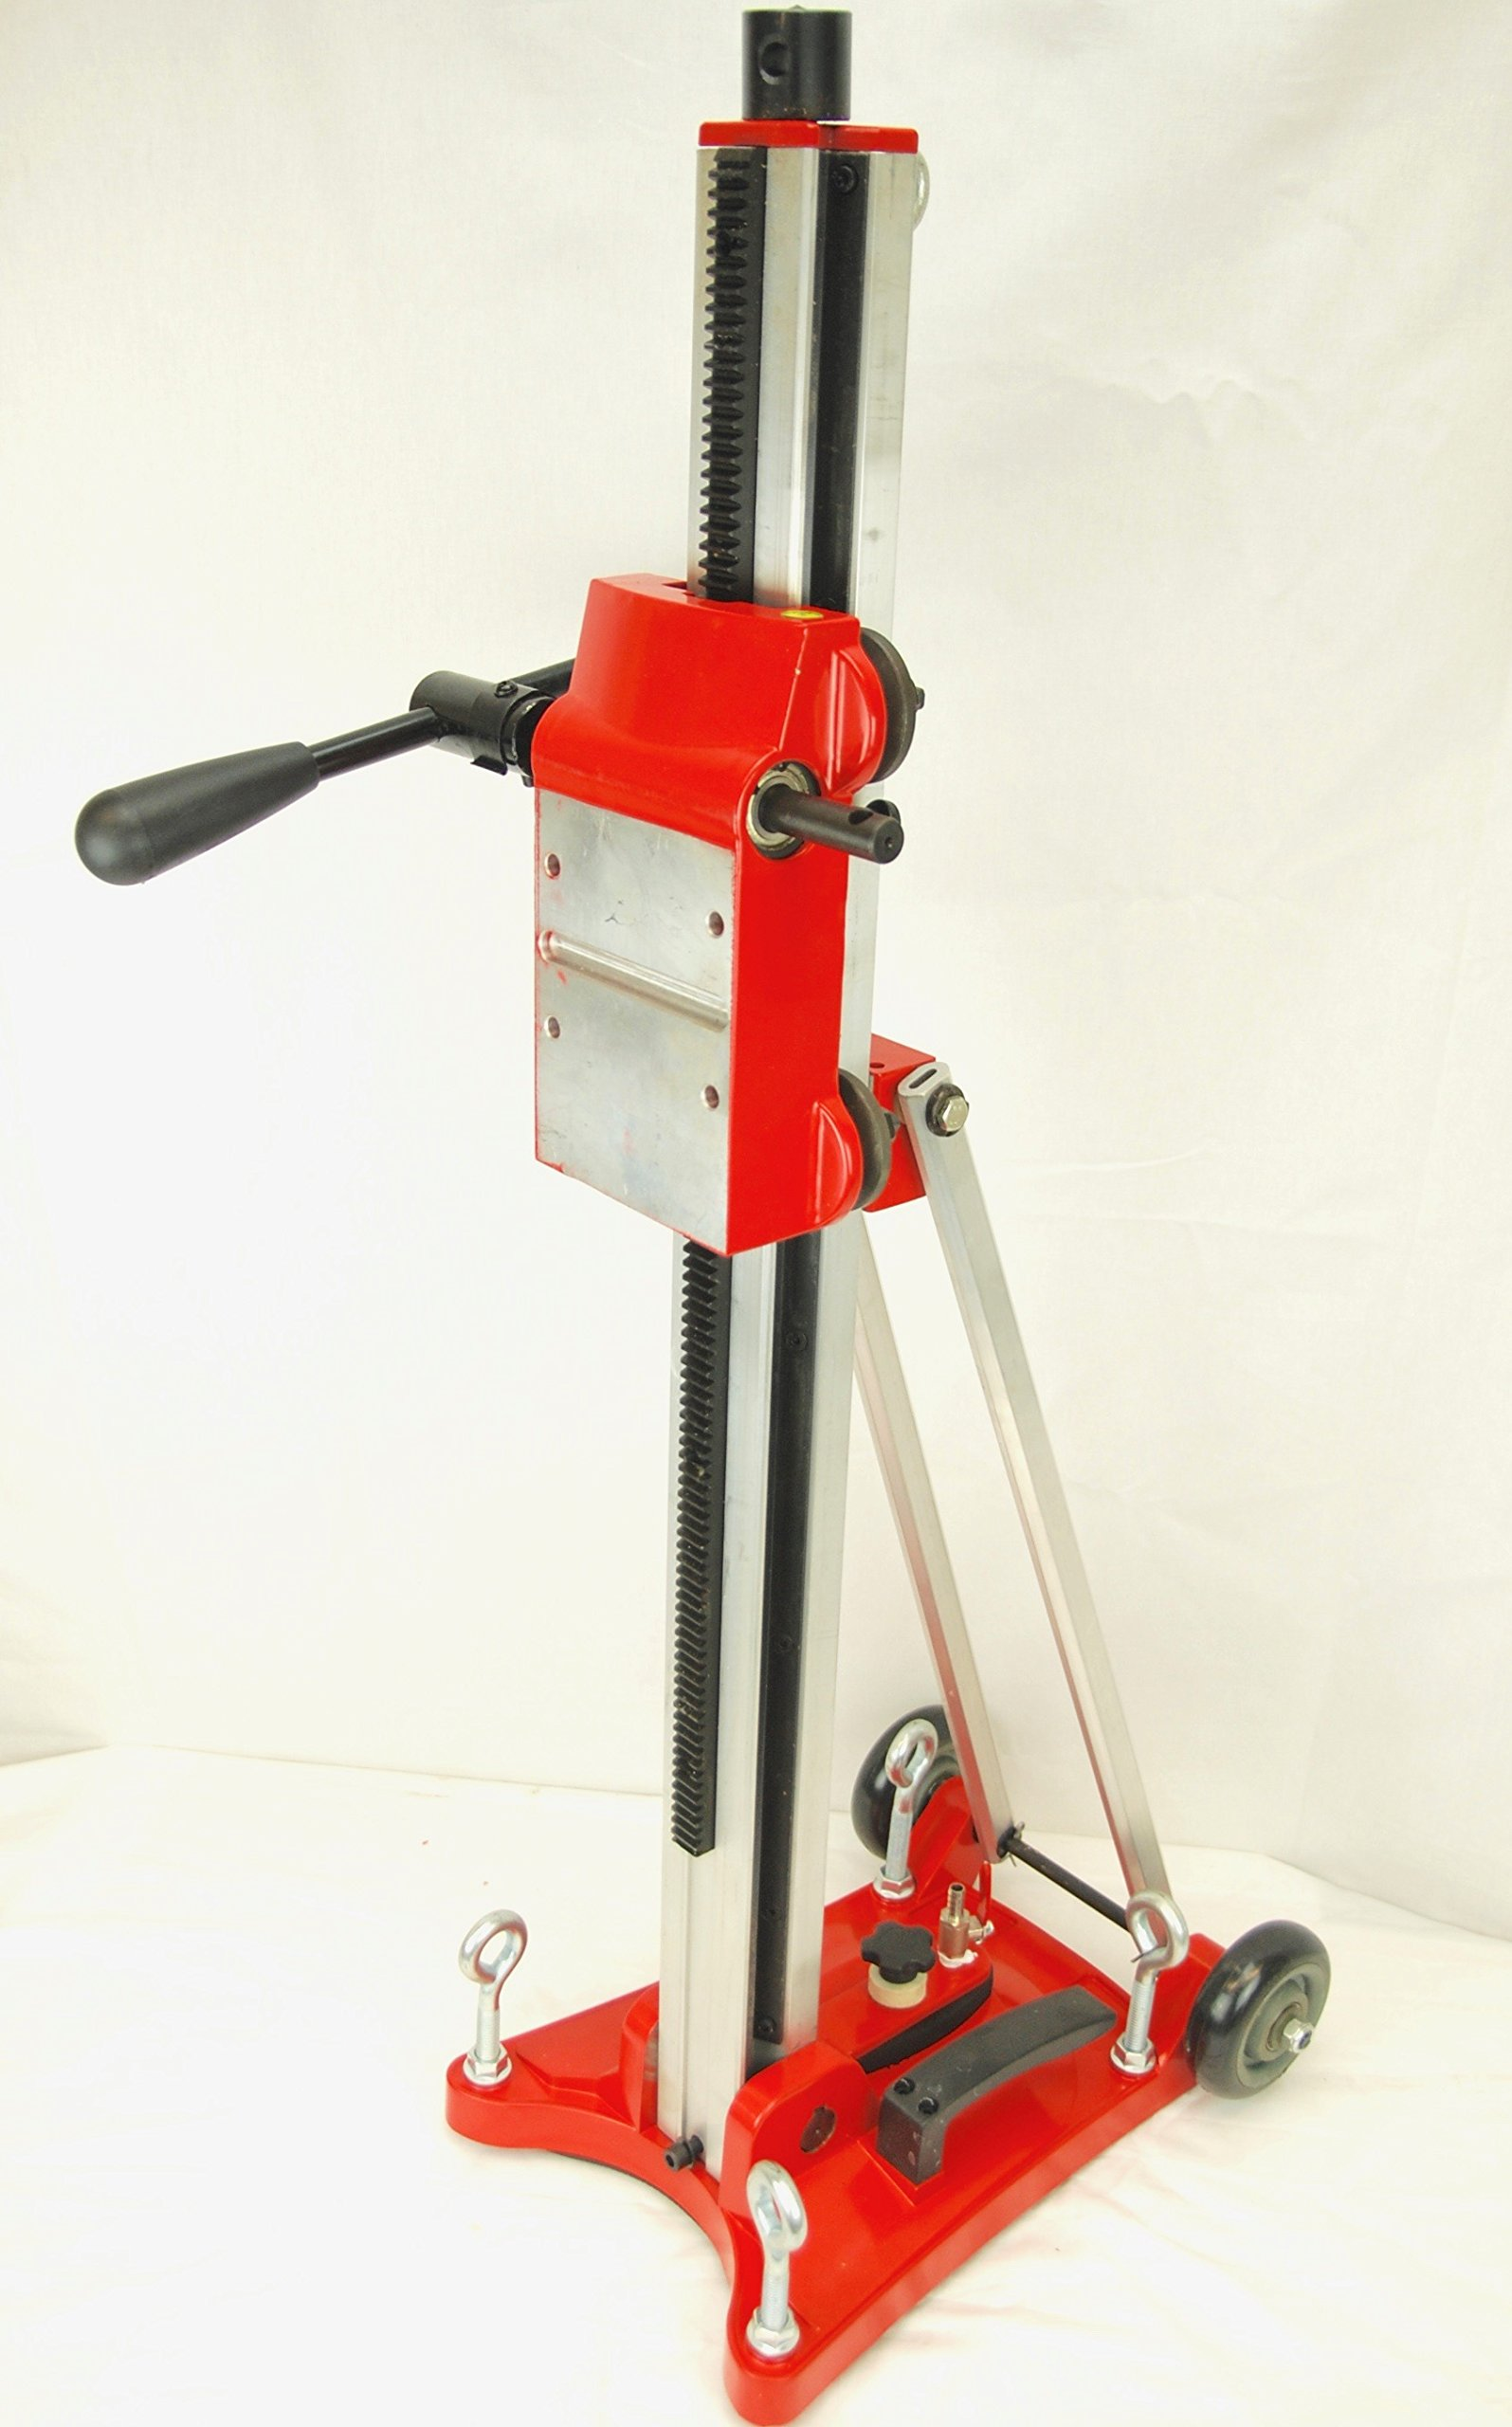 Details about BLUEROCK Z1T/S Tilting Angle Stand for all Z1 Concrete Drills (4'', 8'', 10'', 12'')